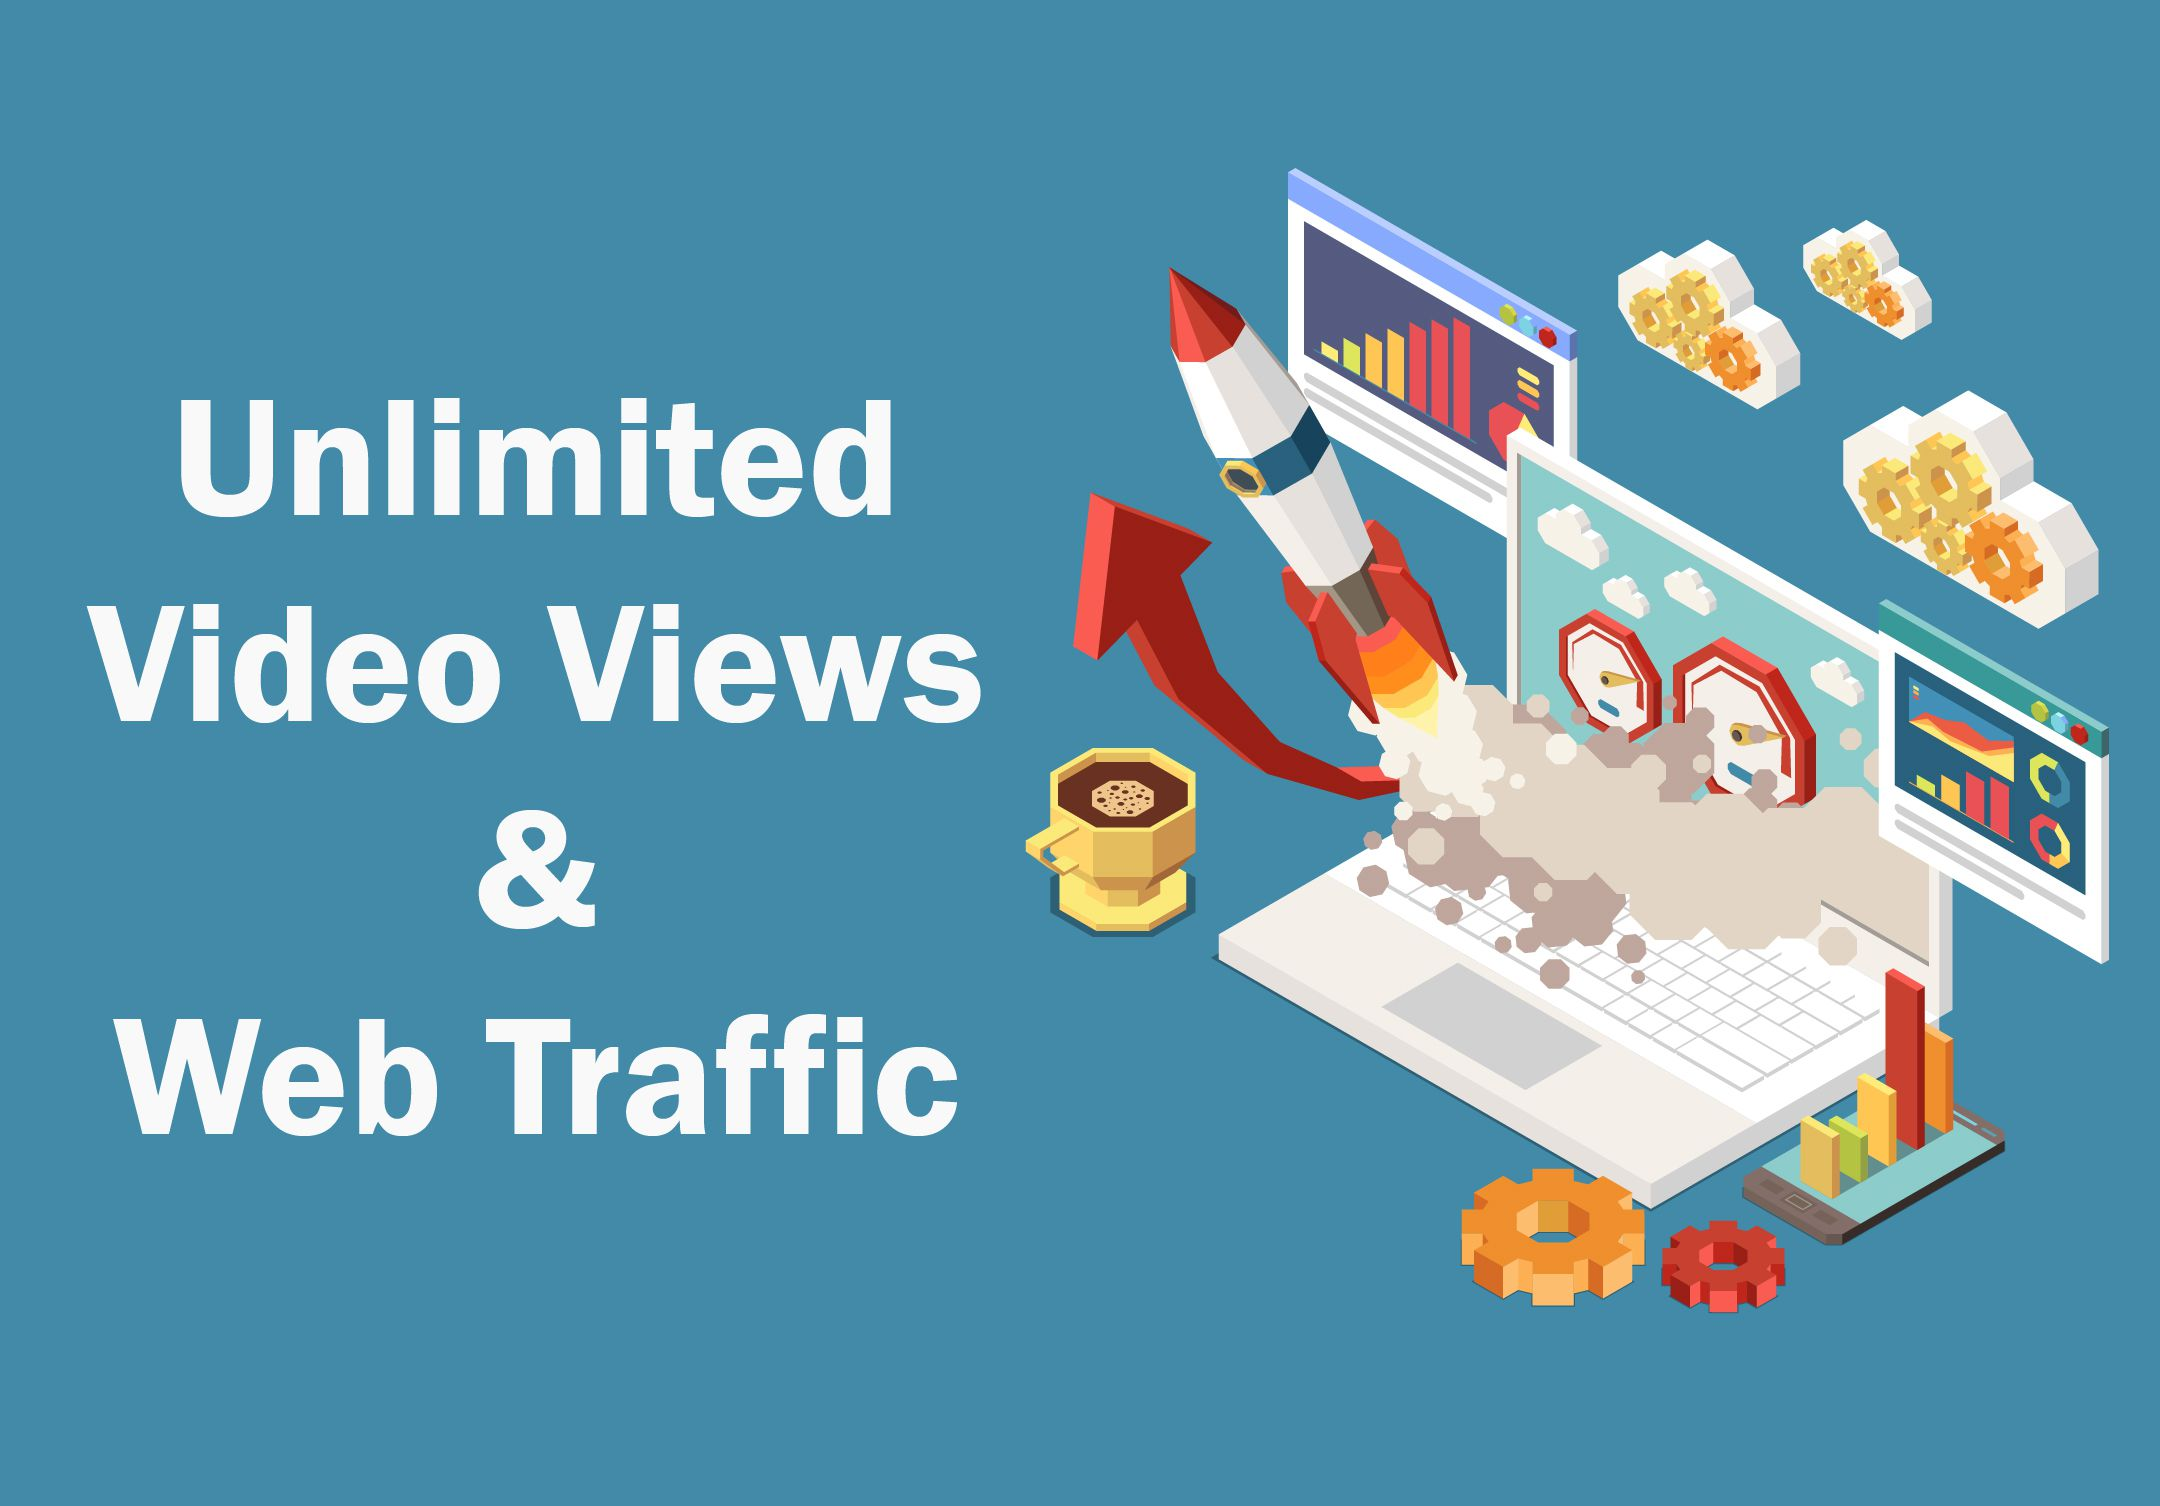 Unlimited Video Views and Web Traffic